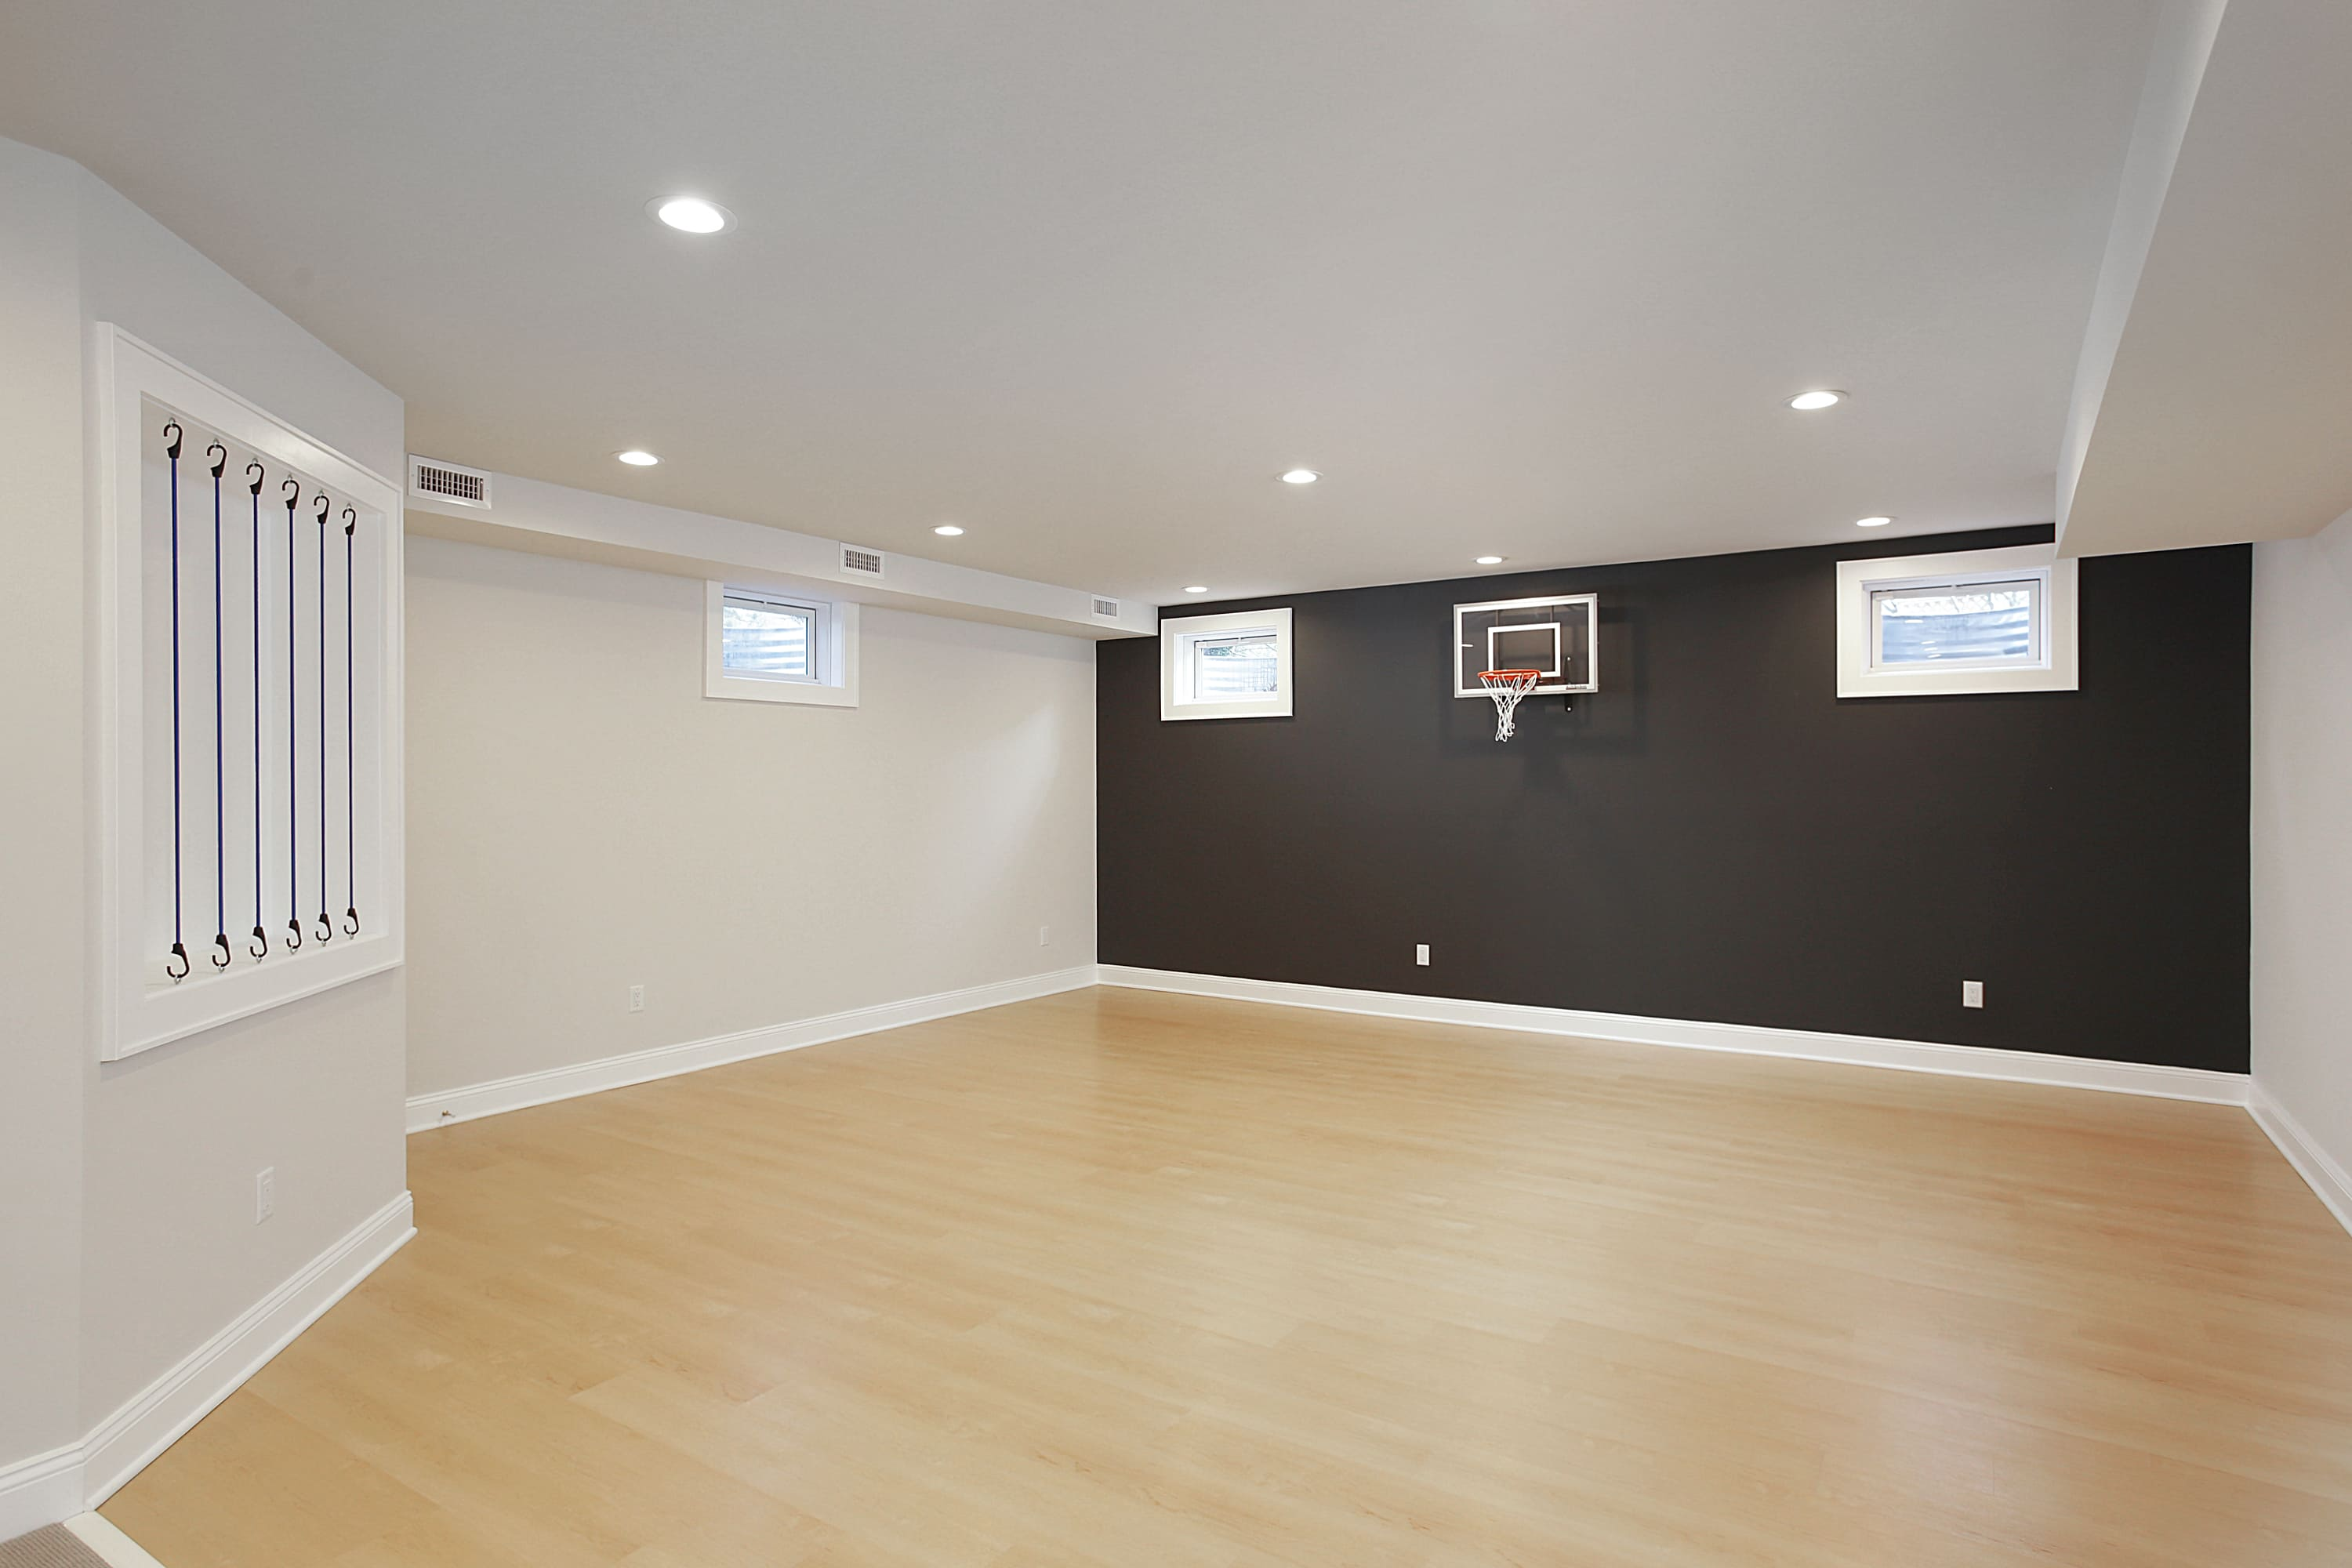 Basement Sports Room II